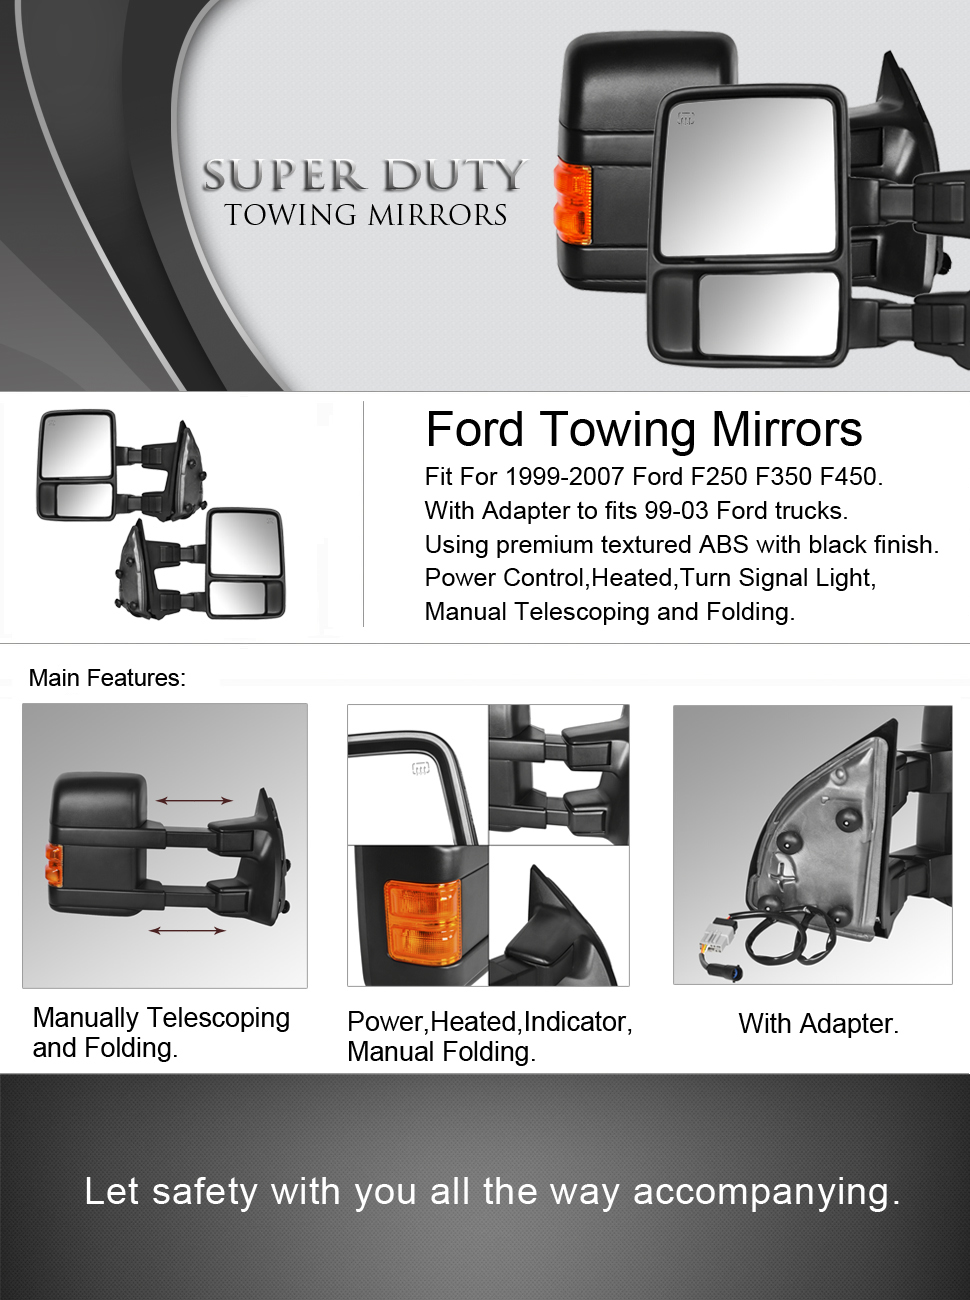 amazon com dedc ford towing mirrors f250 ford tow mirrors f350 f450dedc ford towing mirrors f250 ford tow mirrors f350 f450 pair for 1999 2007 side mirror power heated with signal light (upgrade to 08 superduty retrofit)